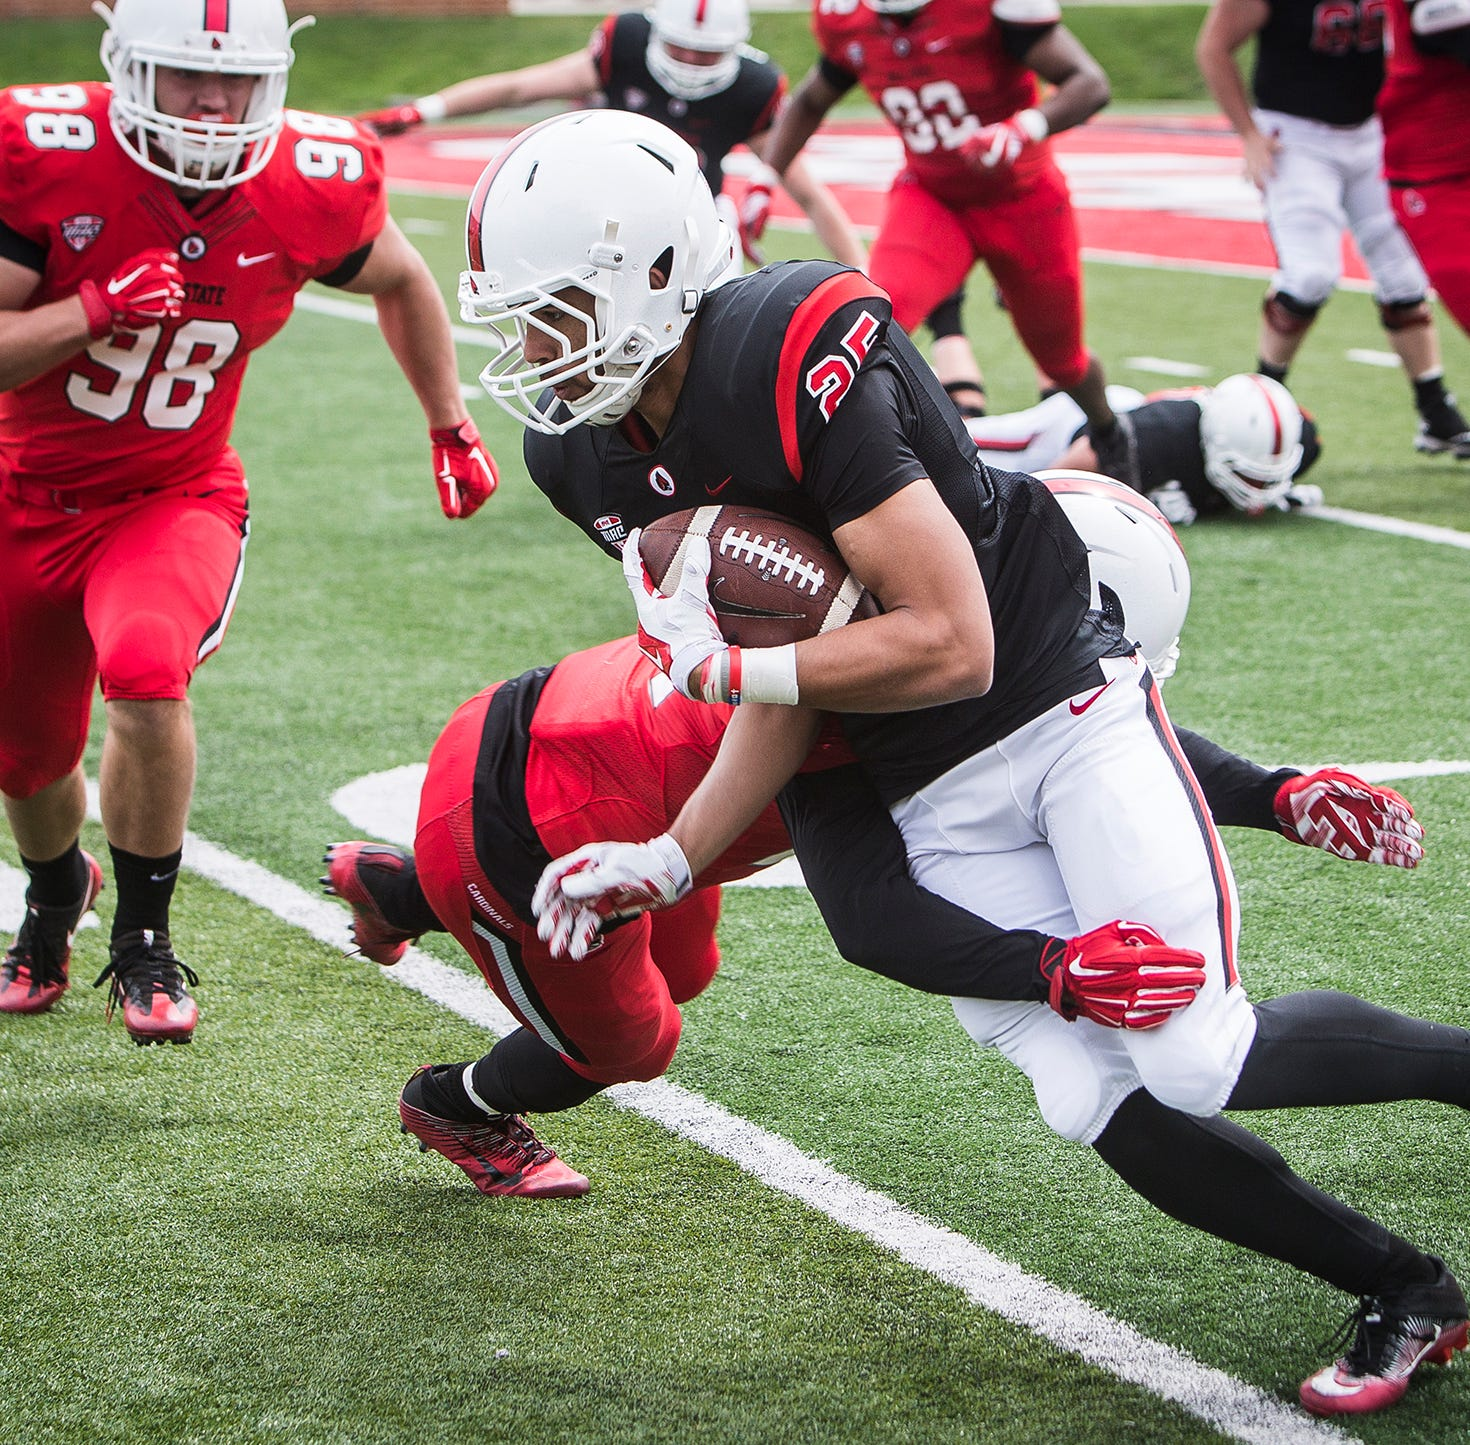 Ball State football schedule 2019 opens vs. Indiana on Aug. 31